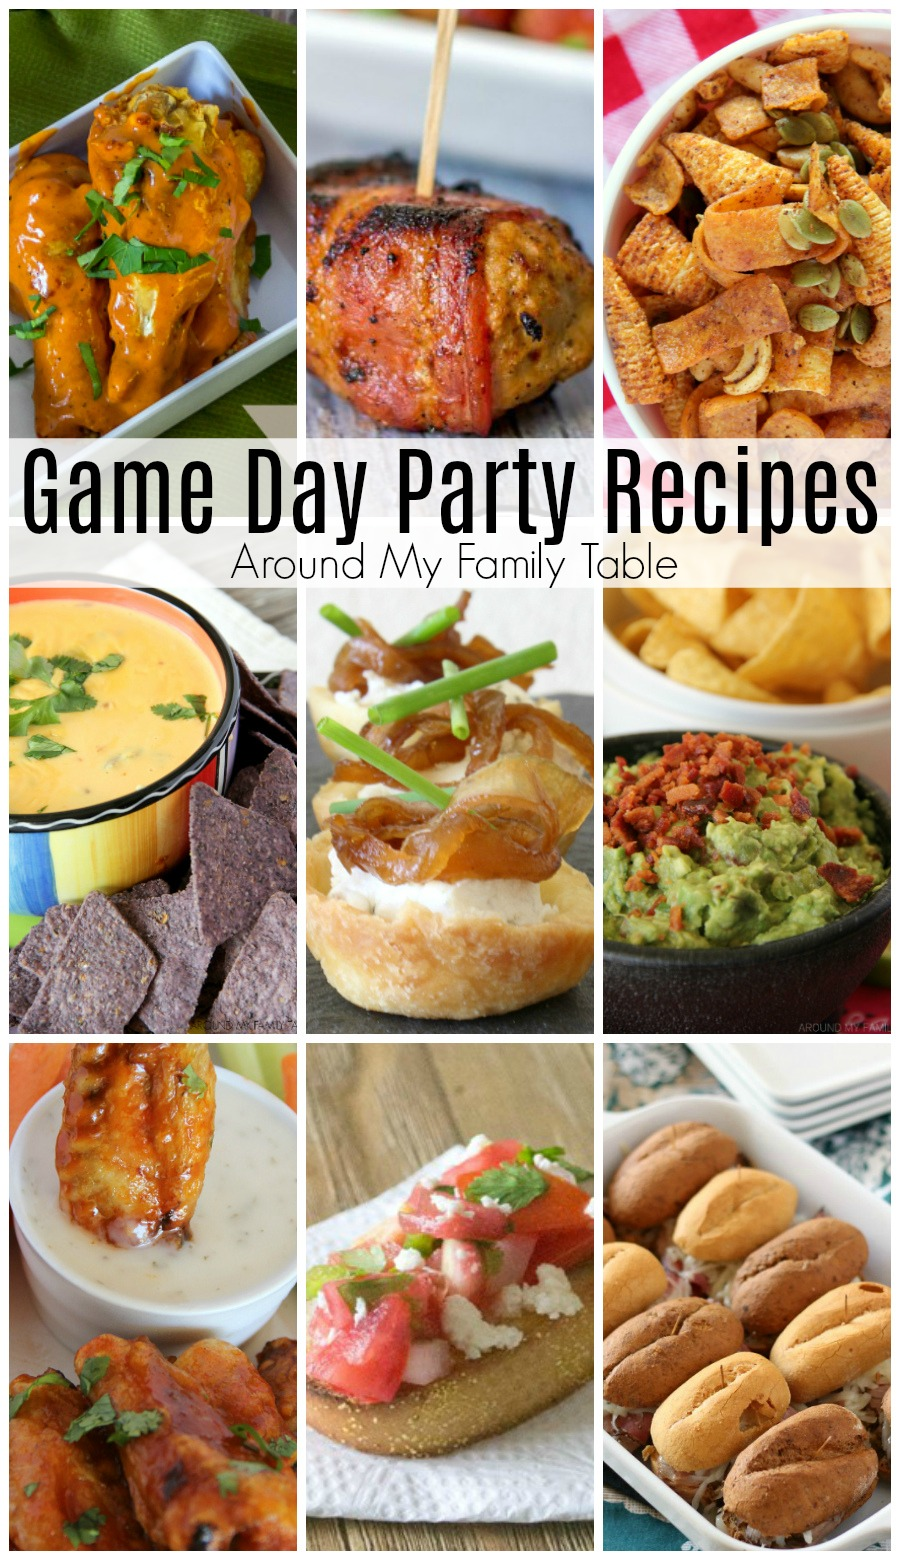 The best Game Day Party Recipes are here just in time for the biggest game of the year.  No party is complete without a wide assortment of delicious food that will keep the gang headed back to the kitchen for more. These are the recipes that my friends ask me to make over and over again for our parties. #gameday #superbowl via @slingmama